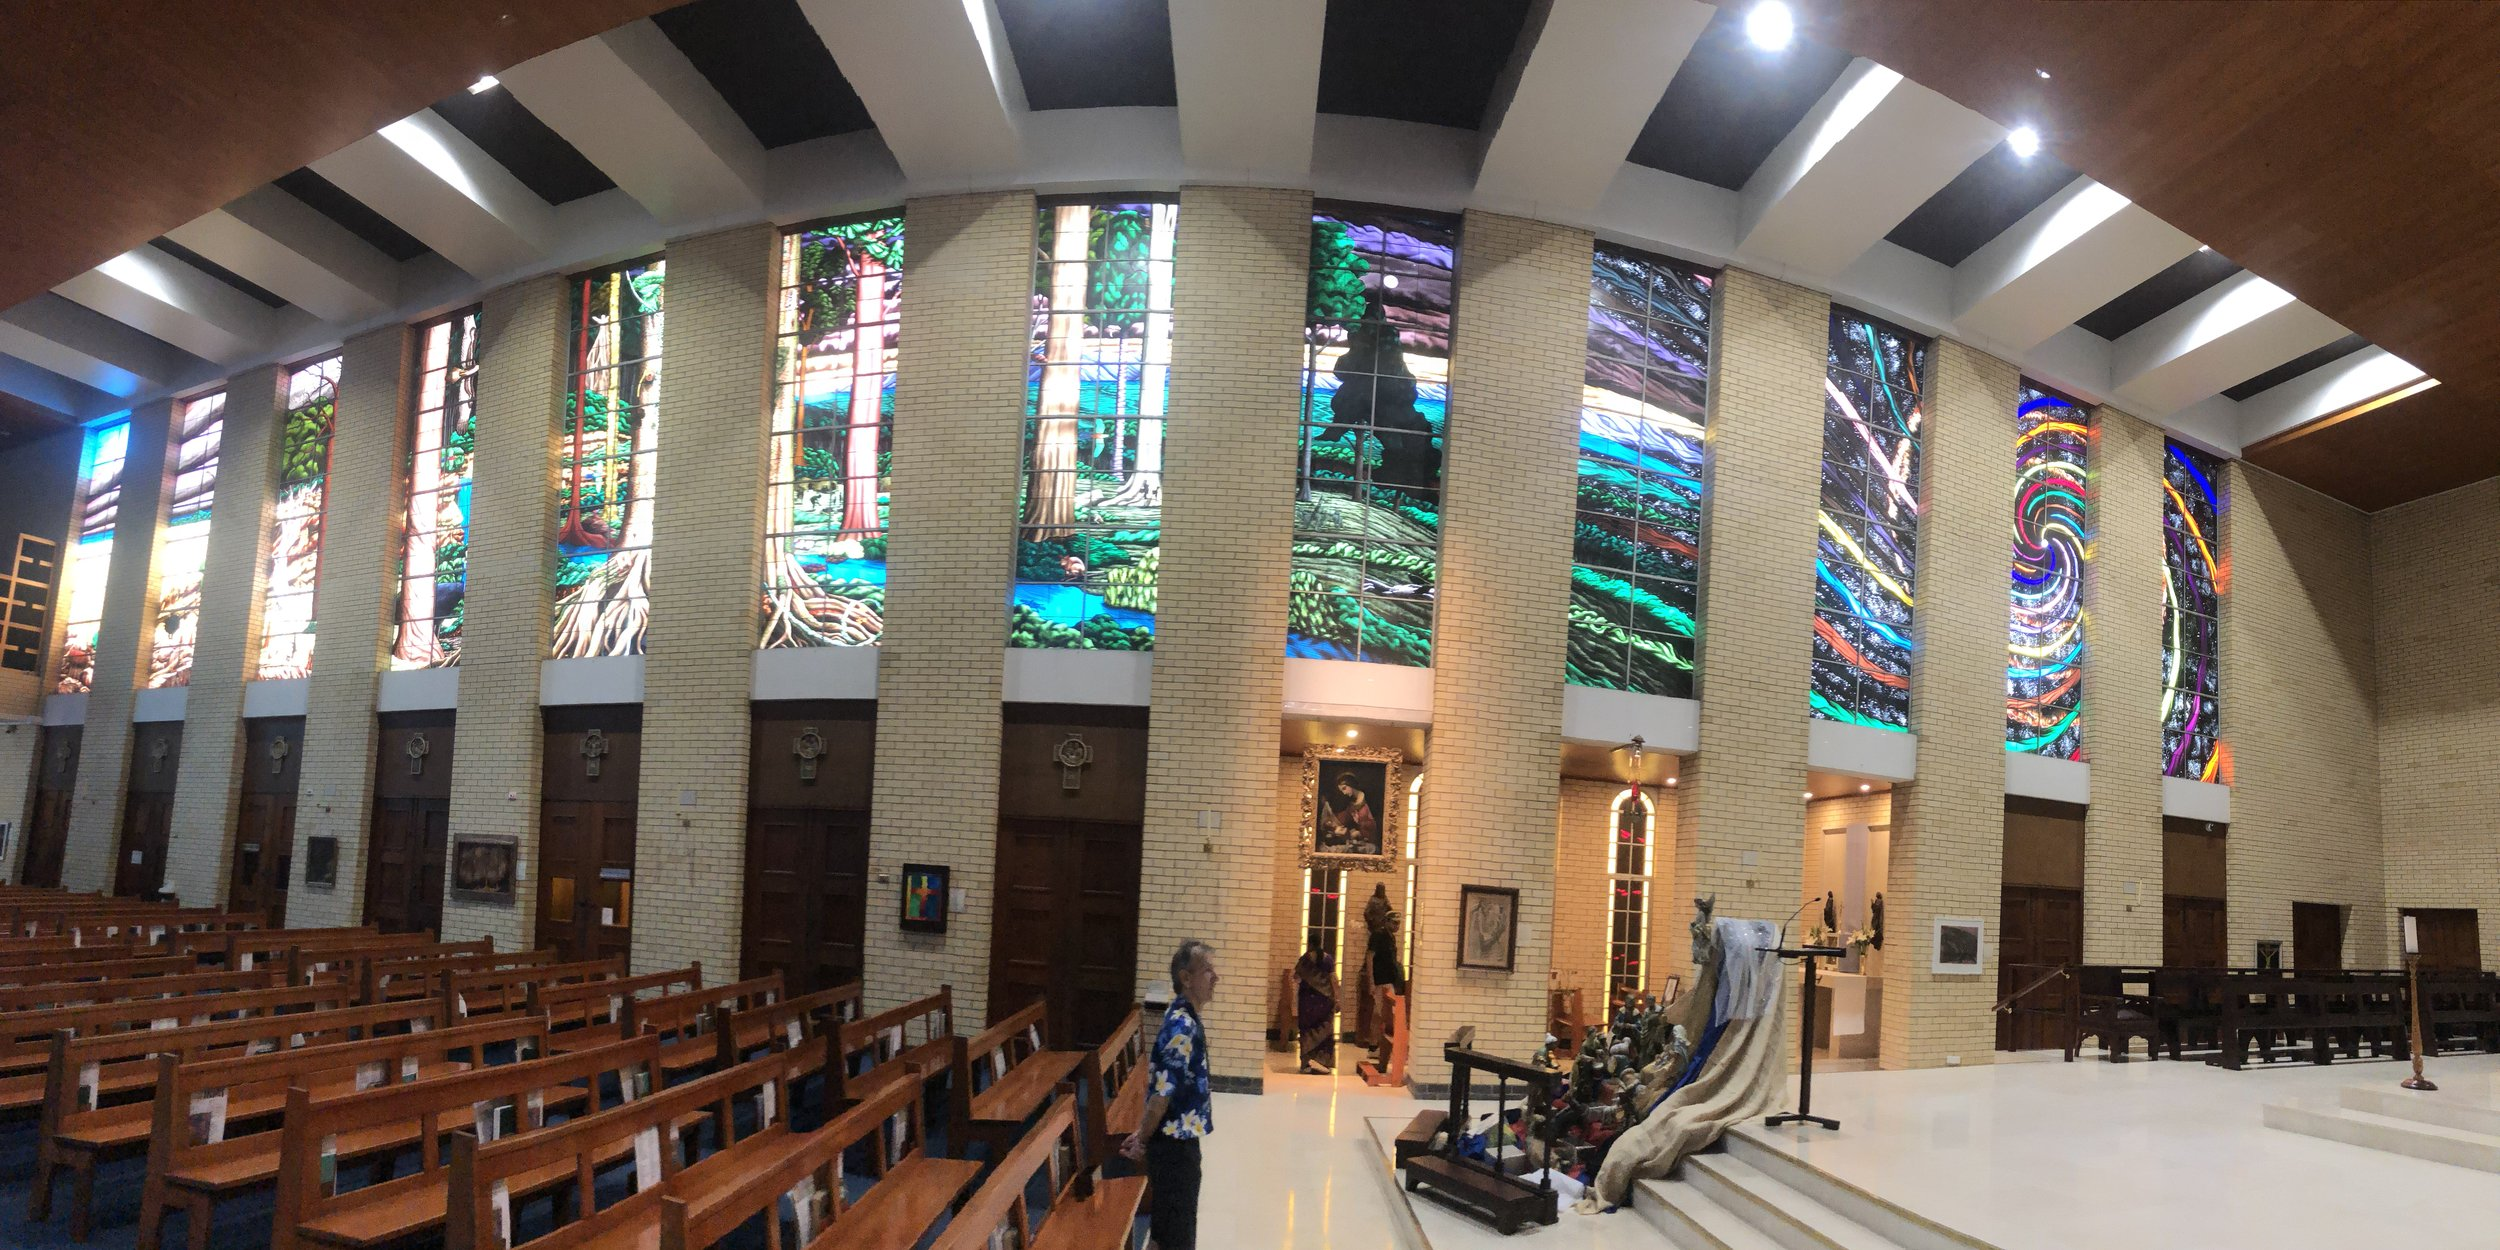 The second part of the creation story. The stained glass windows are a sight in person!